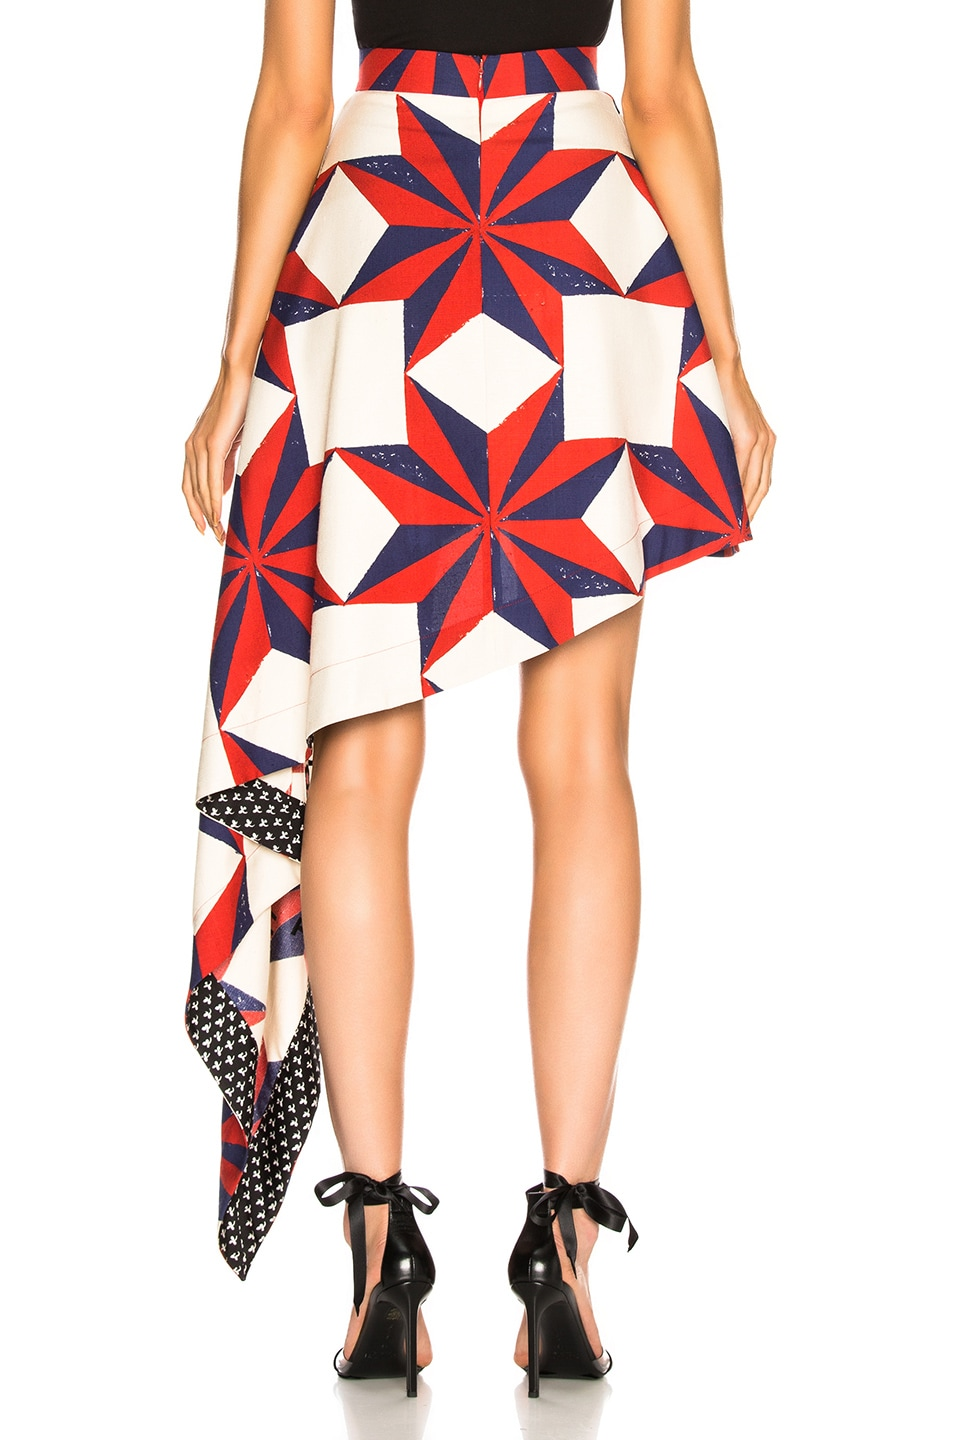 Image 4 of CALVIN KLEIN 205W39NYC Printed Asymmetric Ruffle Skirt in Ecru, Blue, Red & Black